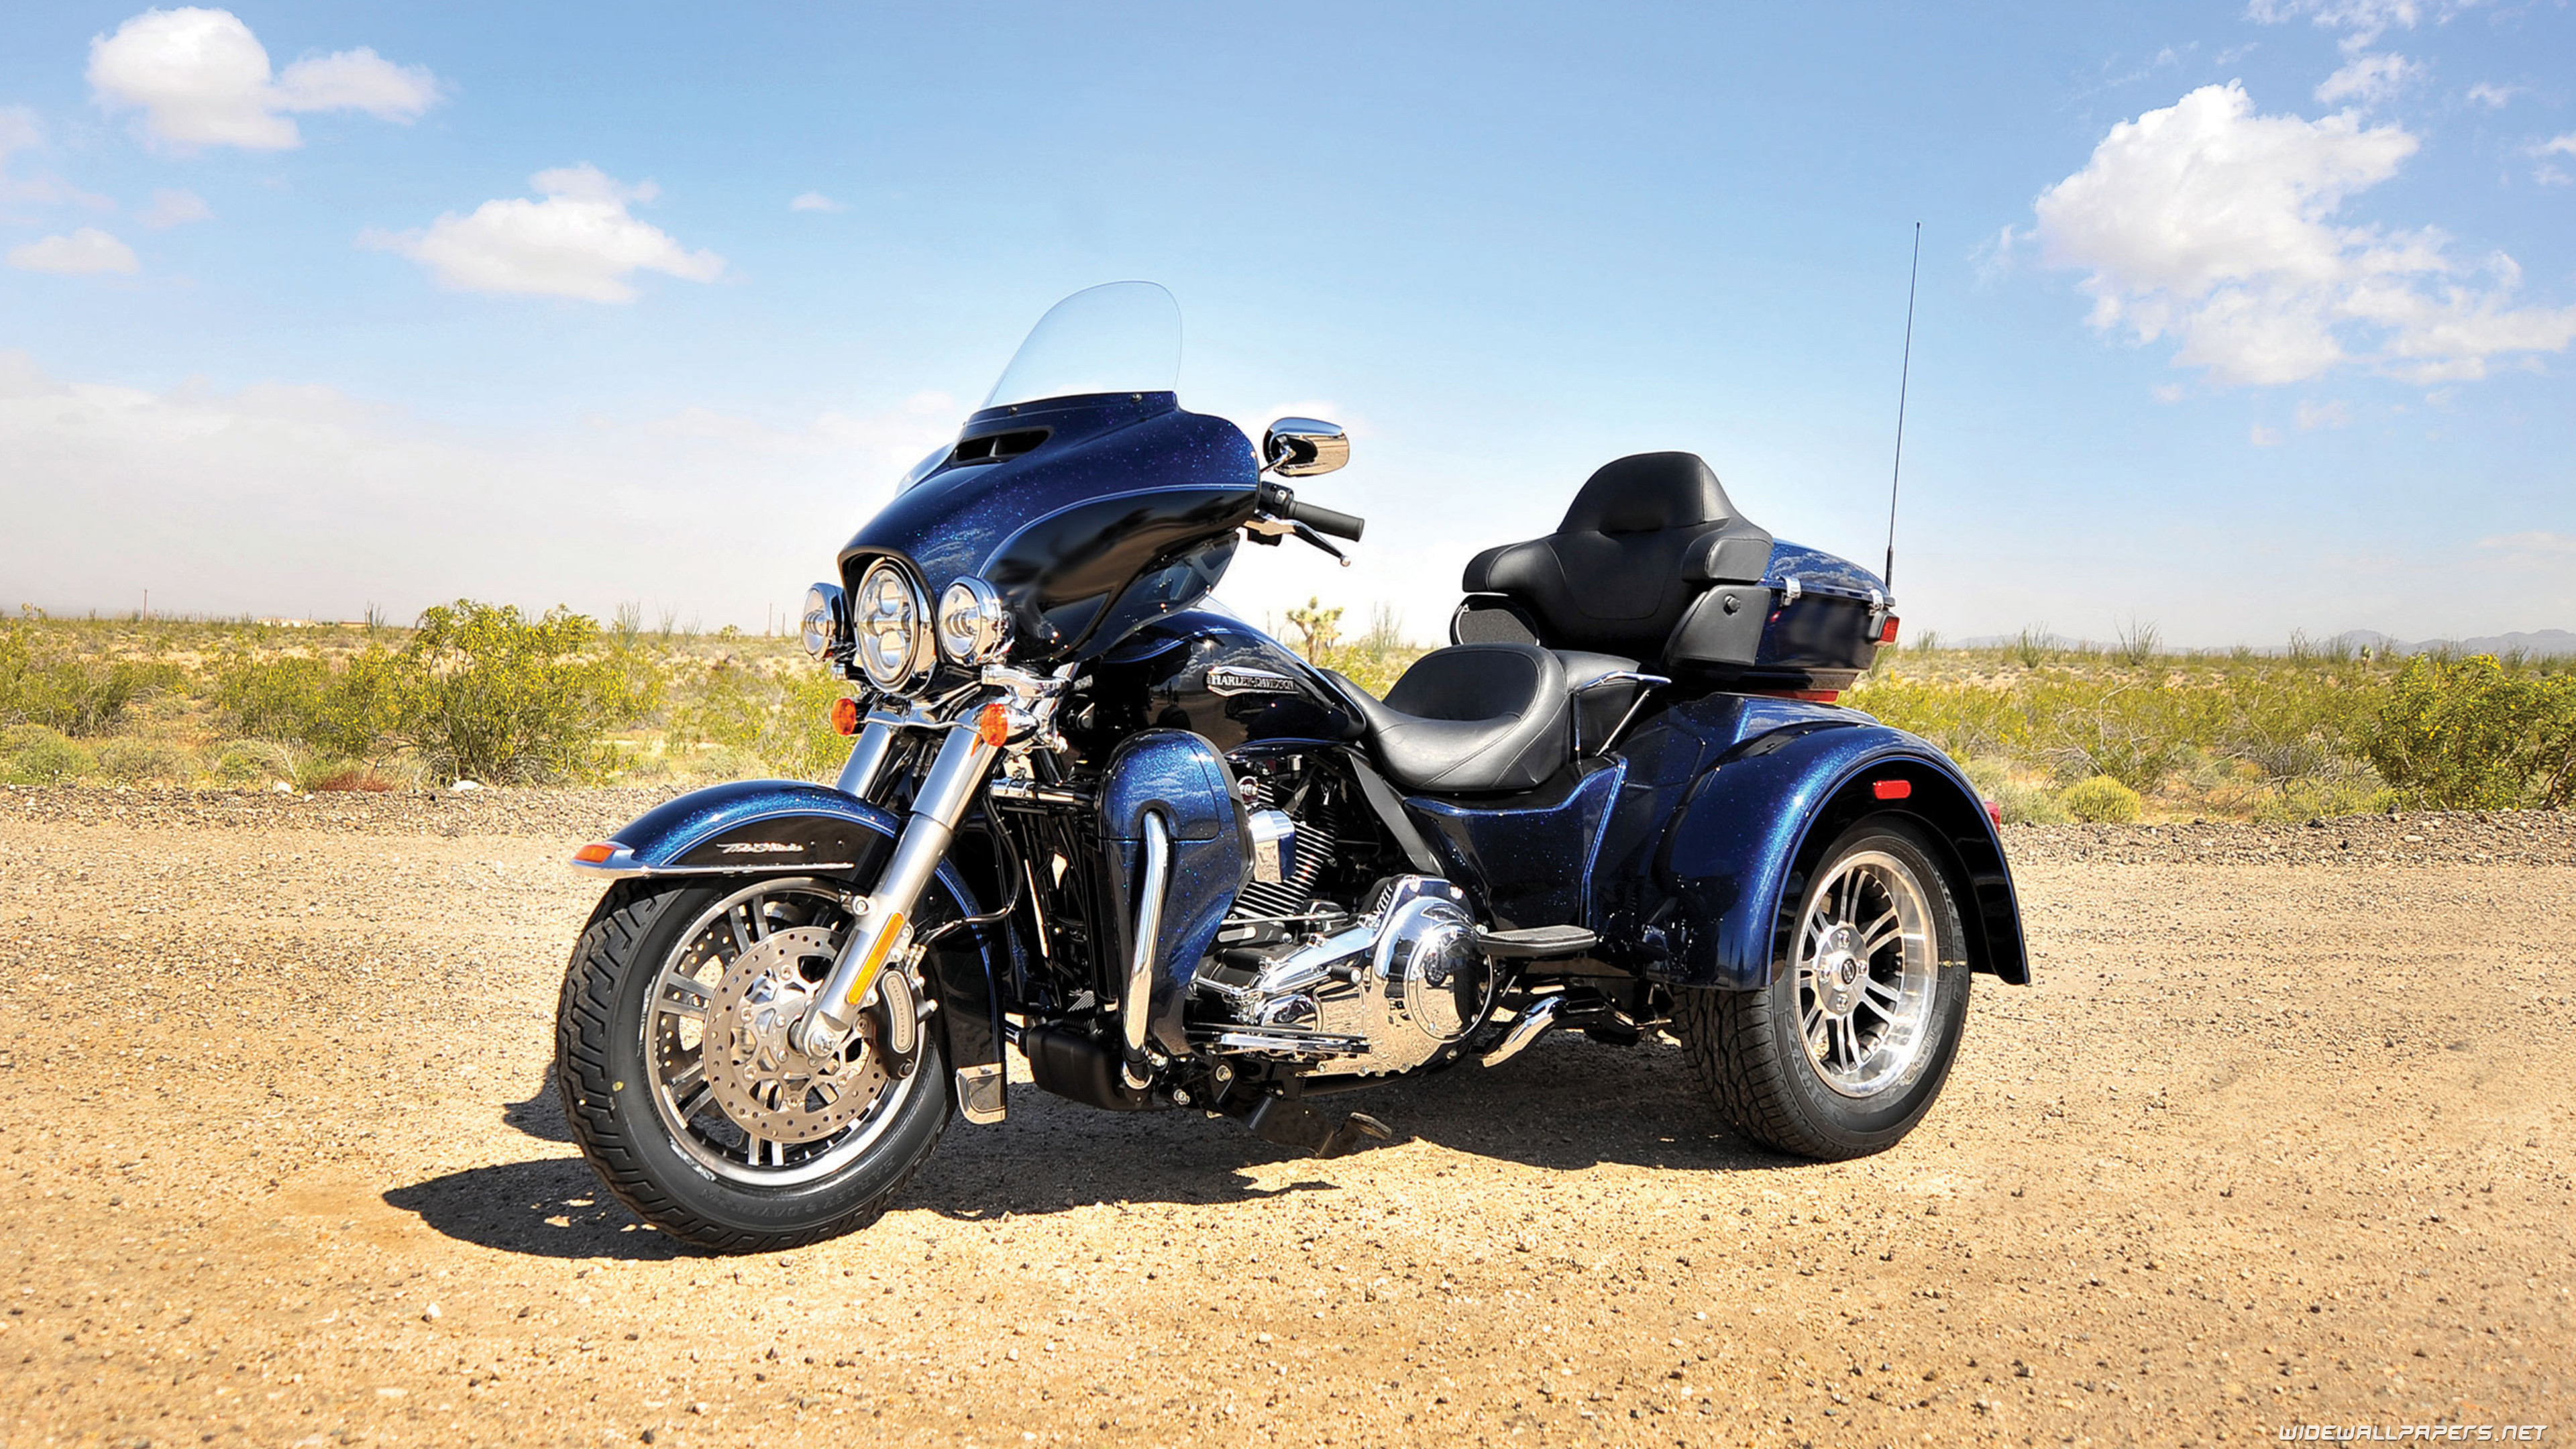 Tri Glide Wallpaper: Harley Davidson Bikes Wallpapers (76+ Images